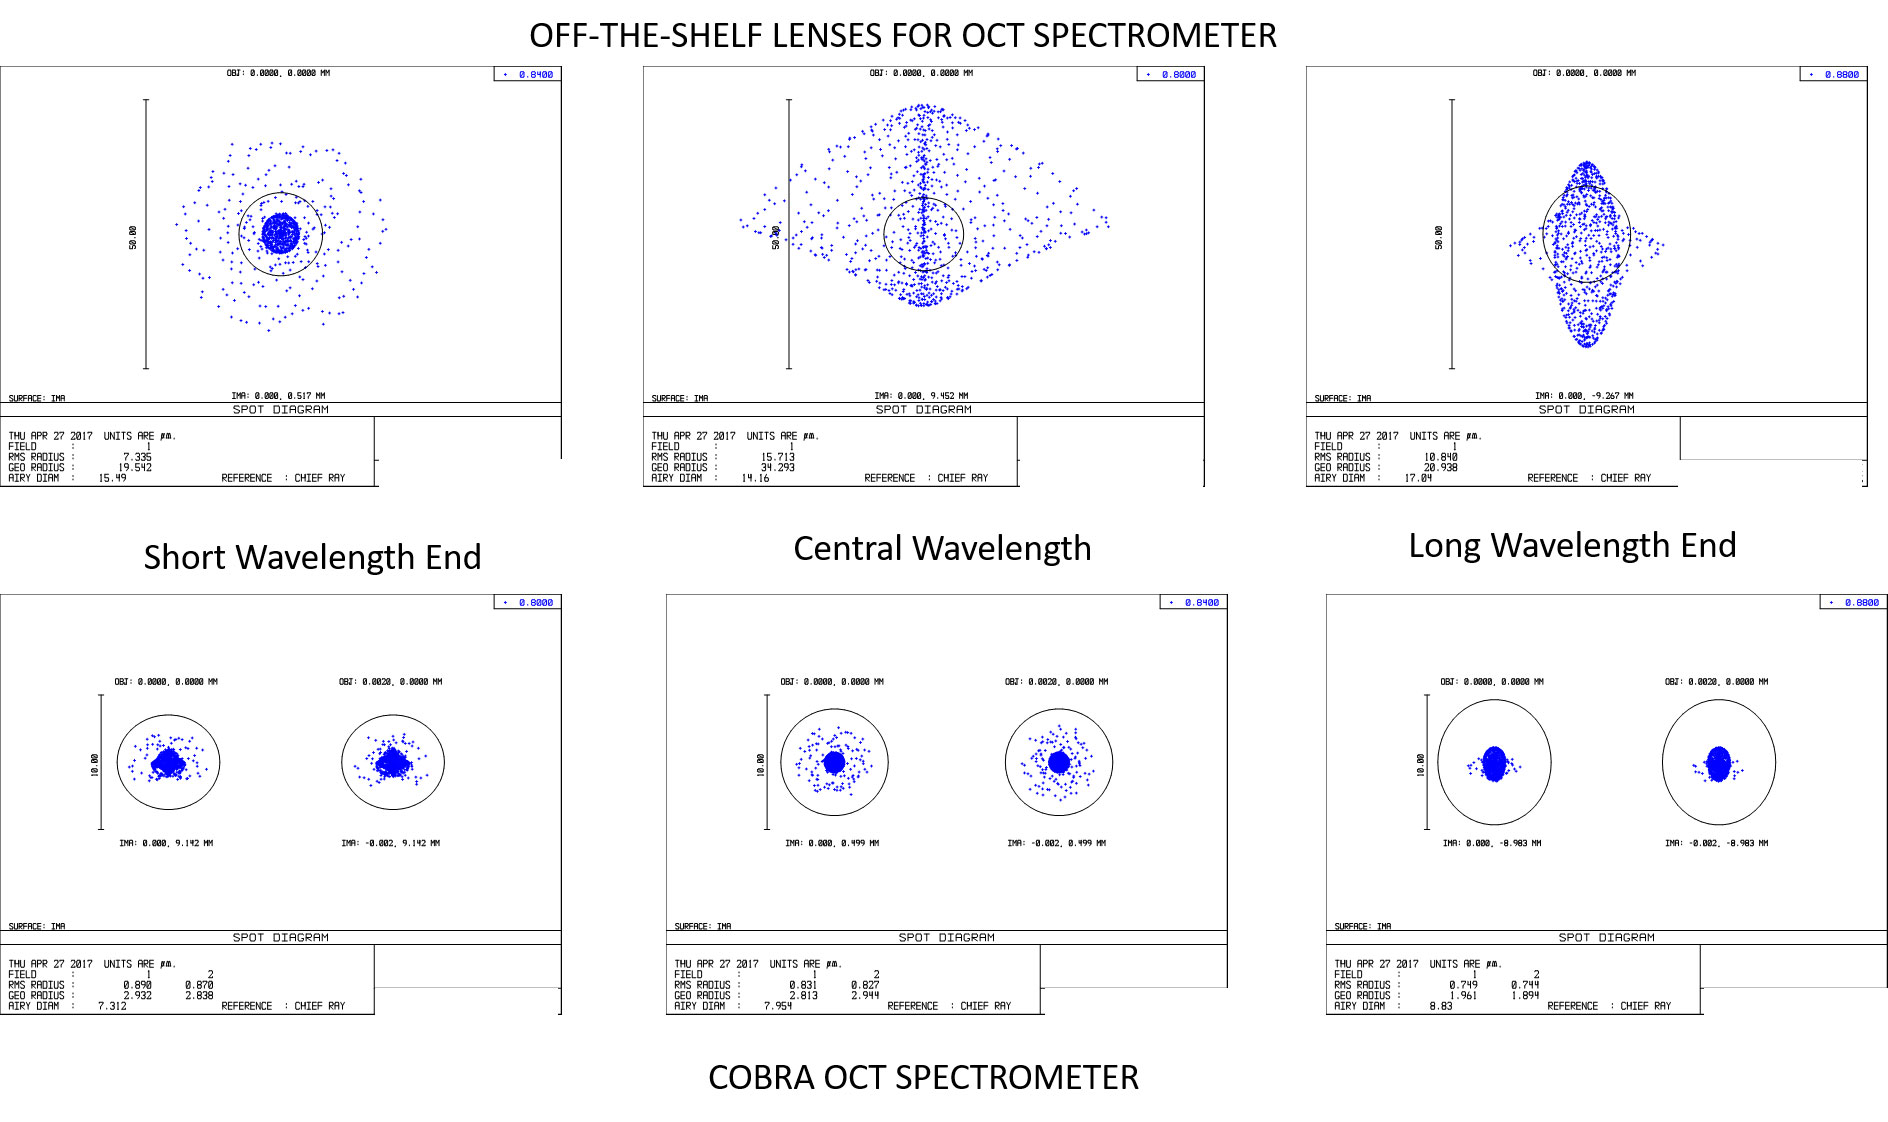 Spot size comparison - Cobra OCT vs off-the-shelf optics